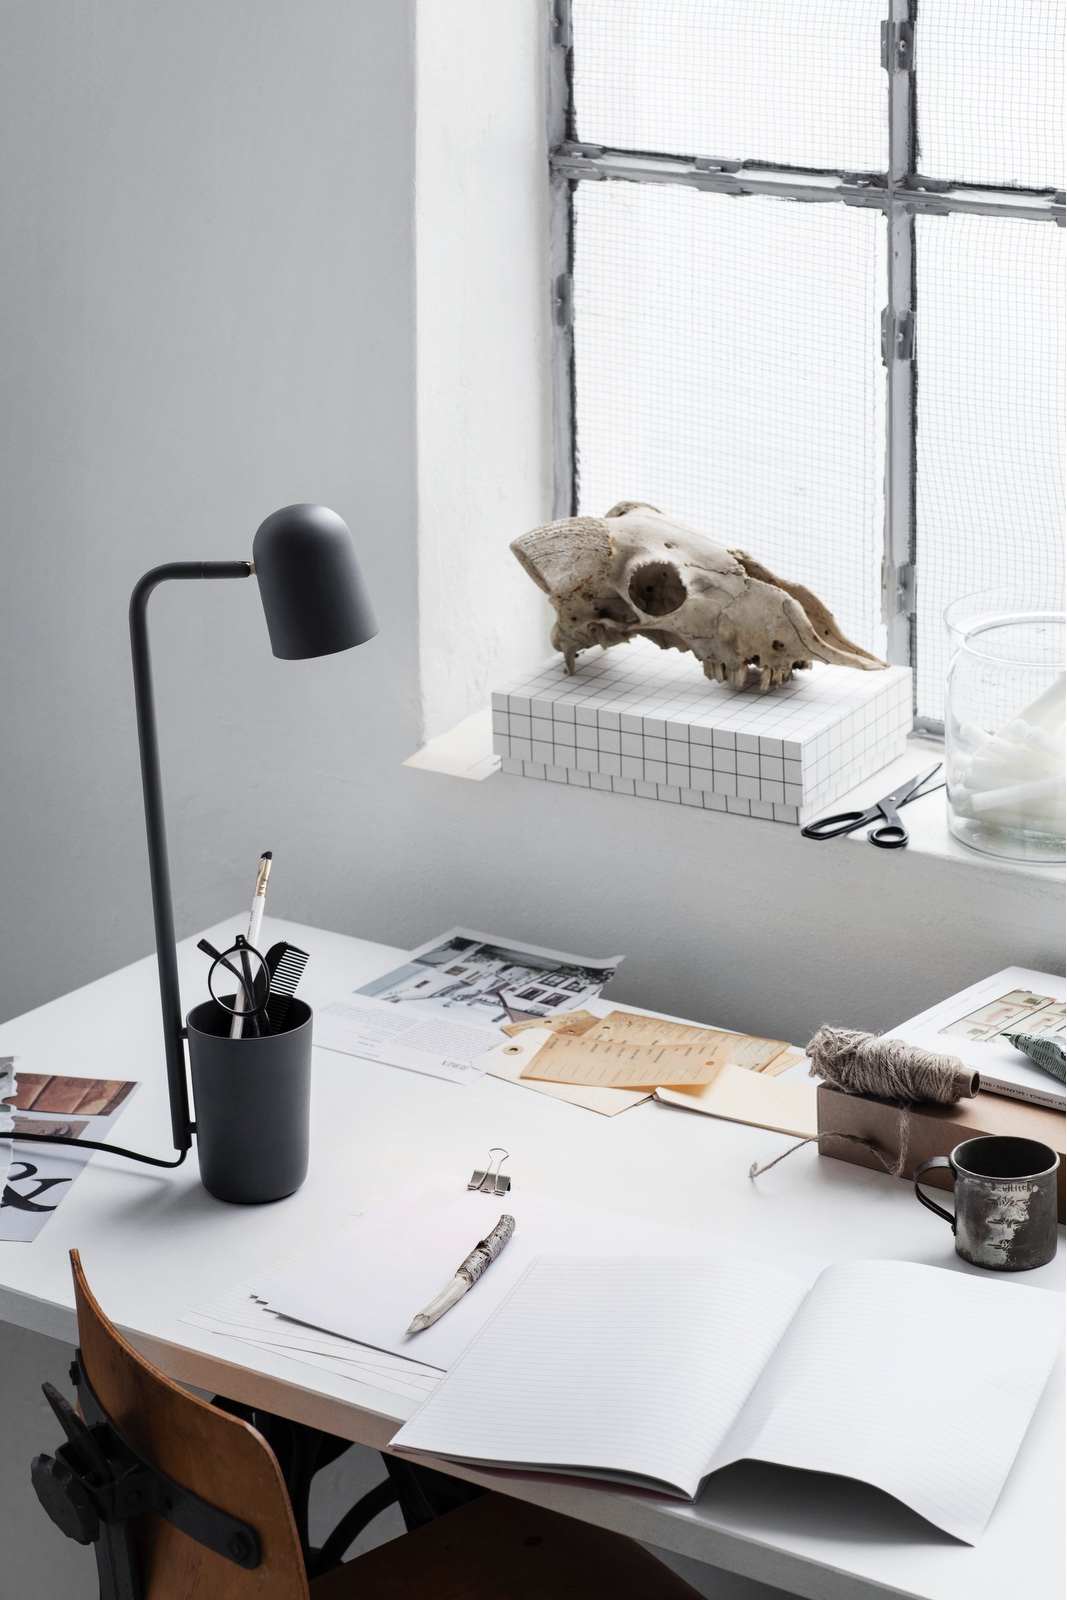 Designed by Mads Sætter-Lassen, Buddy (pictured in dark grey) is an unassuming little helper and desk companion.